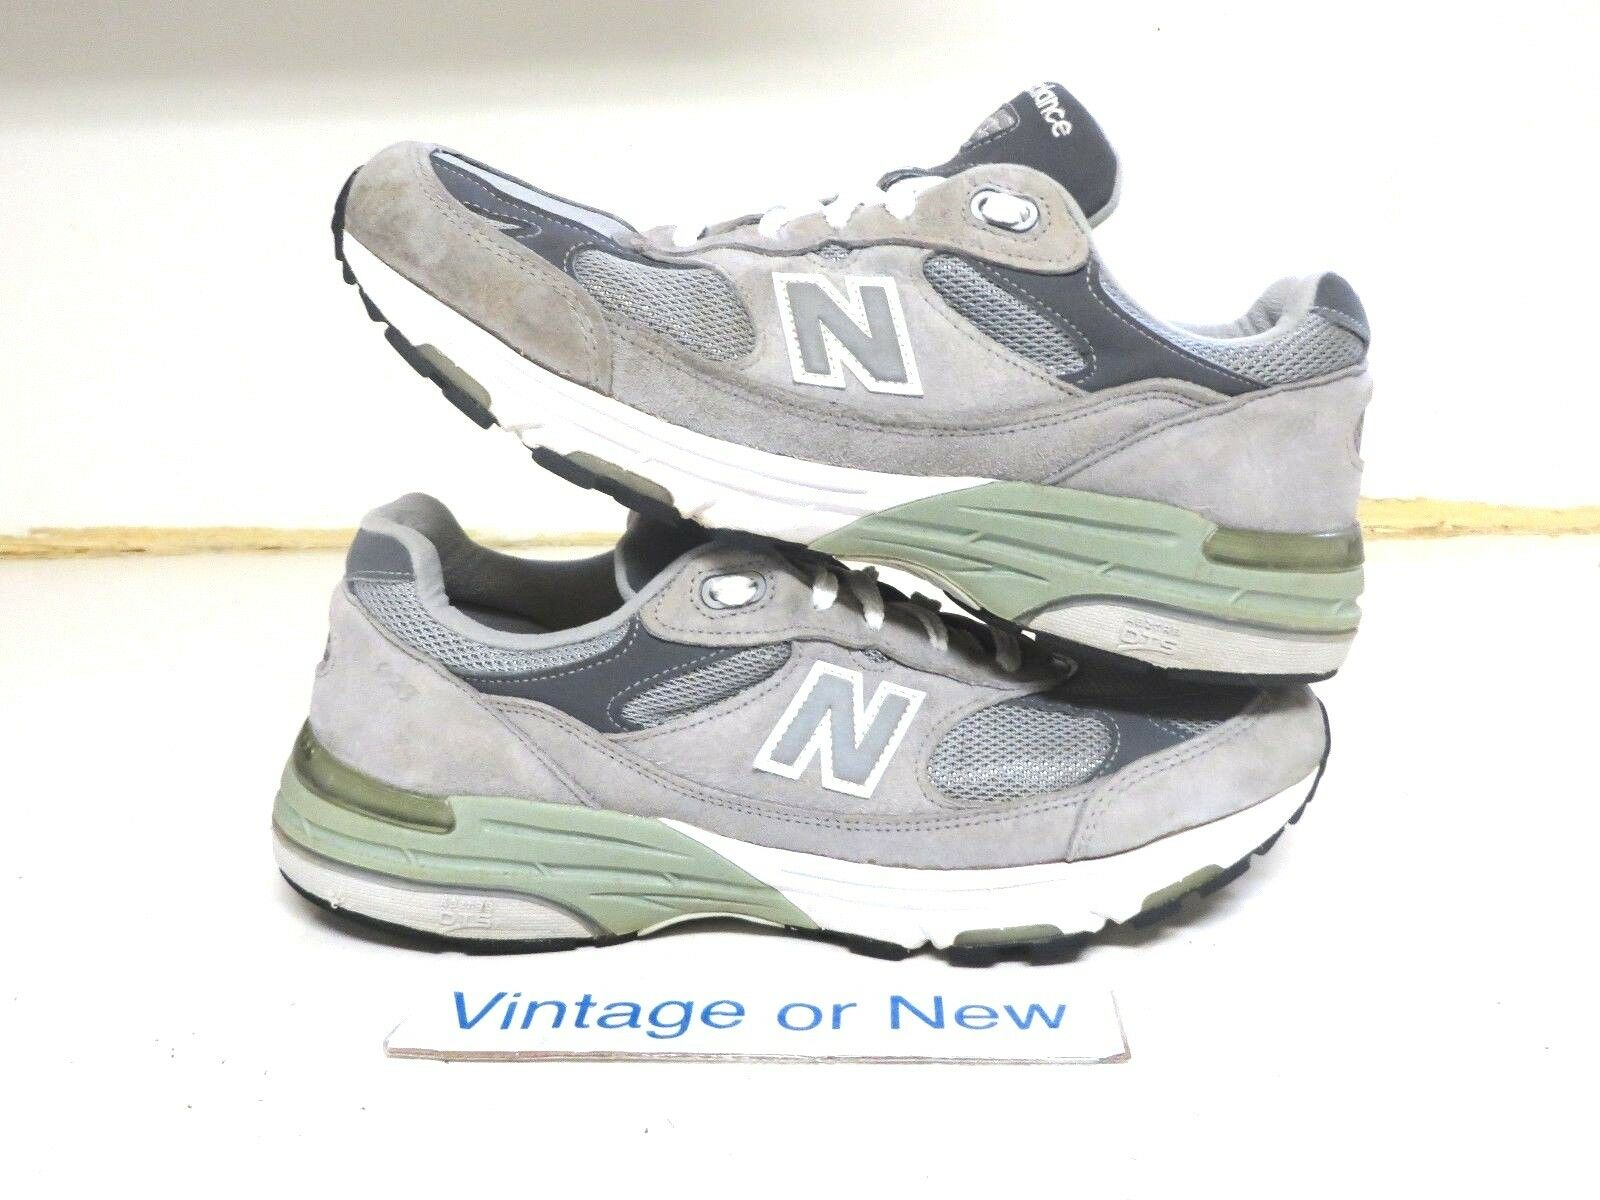 Women's New Balance 993 993 993 Grey Suede WR993GL Running shoes sz 10.5 (2A) 7a4629